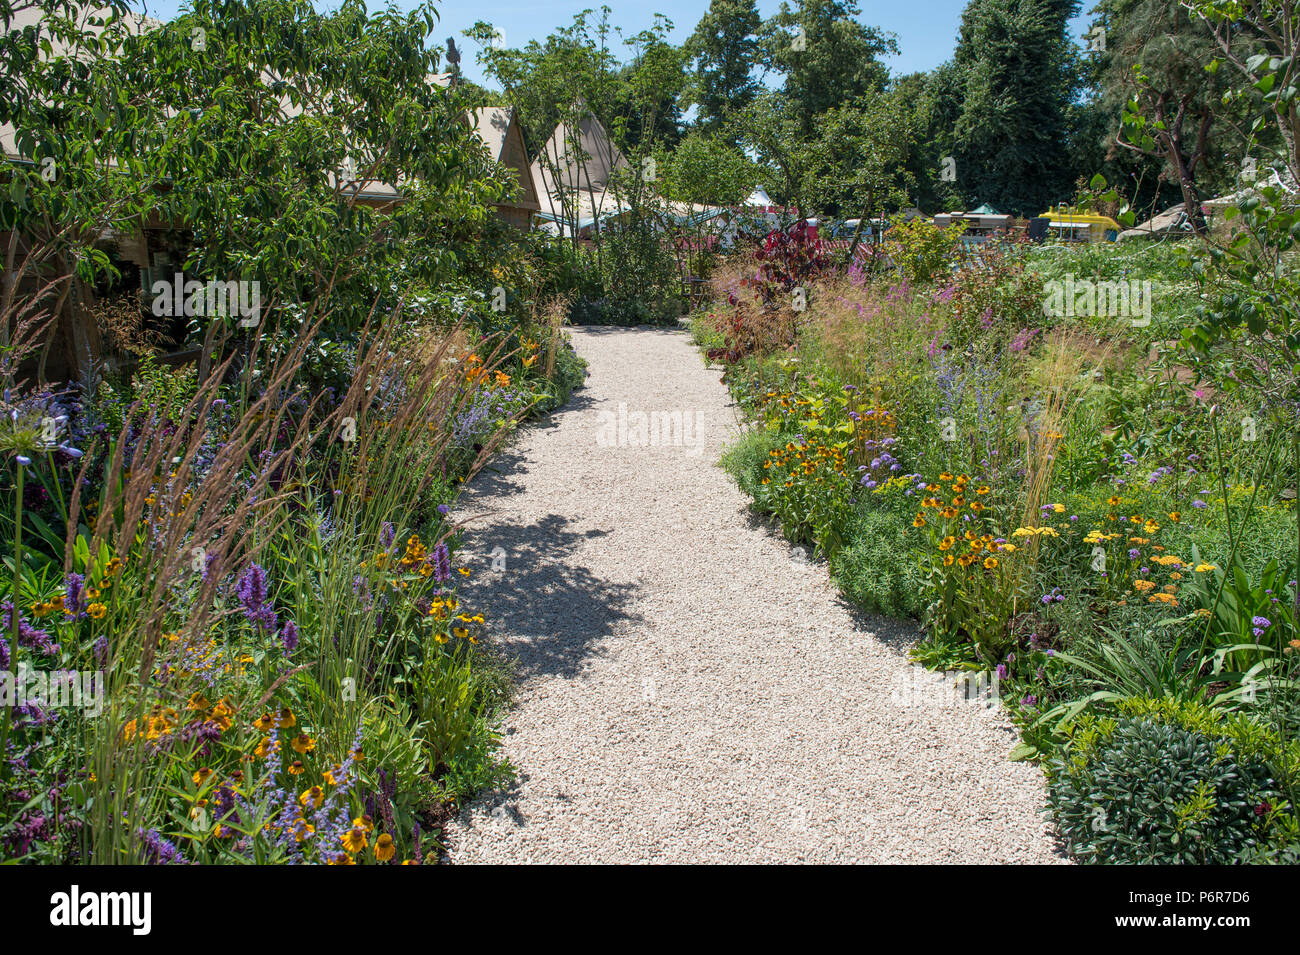 Hampton Court Palace, Surrey, UK. 2 July, 2018. The world's largest annual flower show, RHS Hampton Court Palace Flower Show supported by Viking Cruises, opens to the public from 5 - 8 July 2018. BBC Countryfile Wildlife Garden designed by Anne-Marie Powell. Credit: Malcolm Park/Alamy Live News. - Stock Image